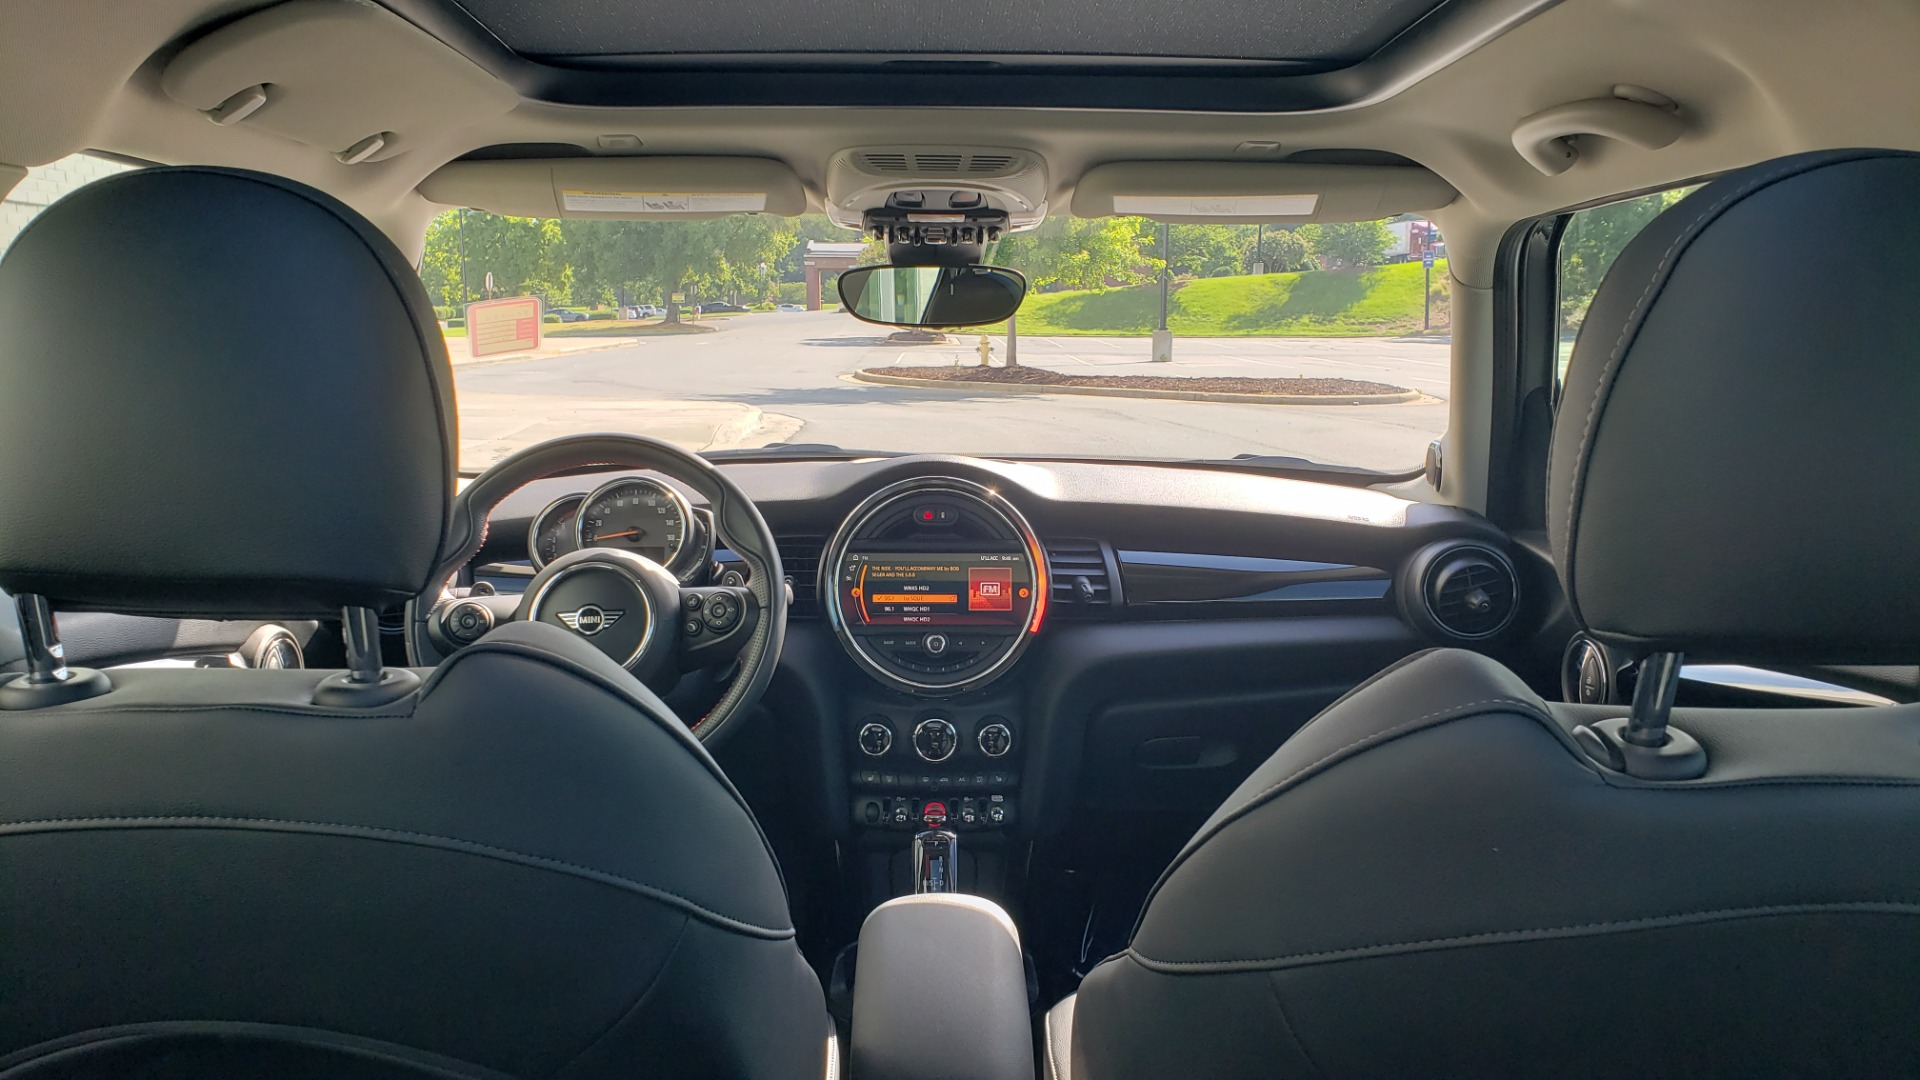 Used 2020 MINI HARDTOP 4 DOOR COOPER S / NAV / SUNROOF / AUTO / H/K SND / REARVIEW for sale $28,495 at Formula Imports in Charlotte NC 28227 23